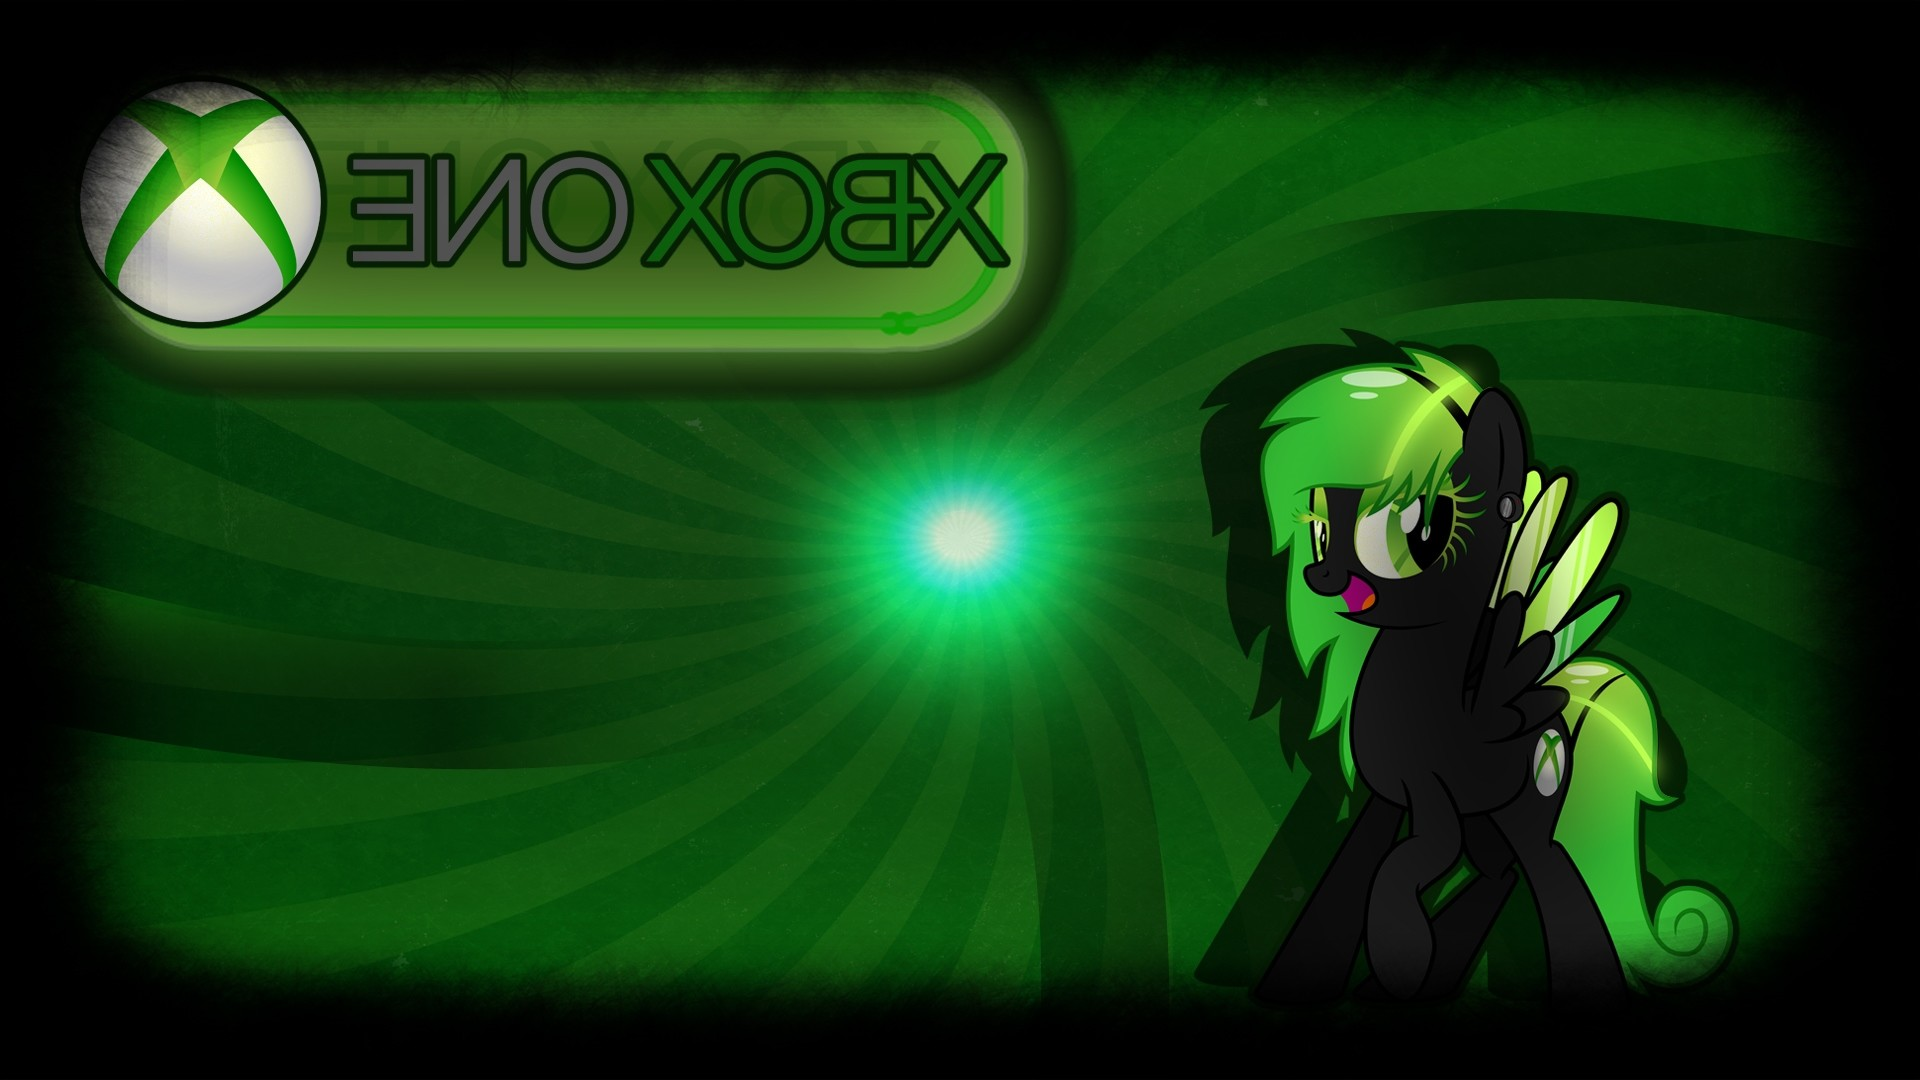 Xbox one wallpaper 1920x1080 83 images - Xbox one wallpaper 1920x1080 ...